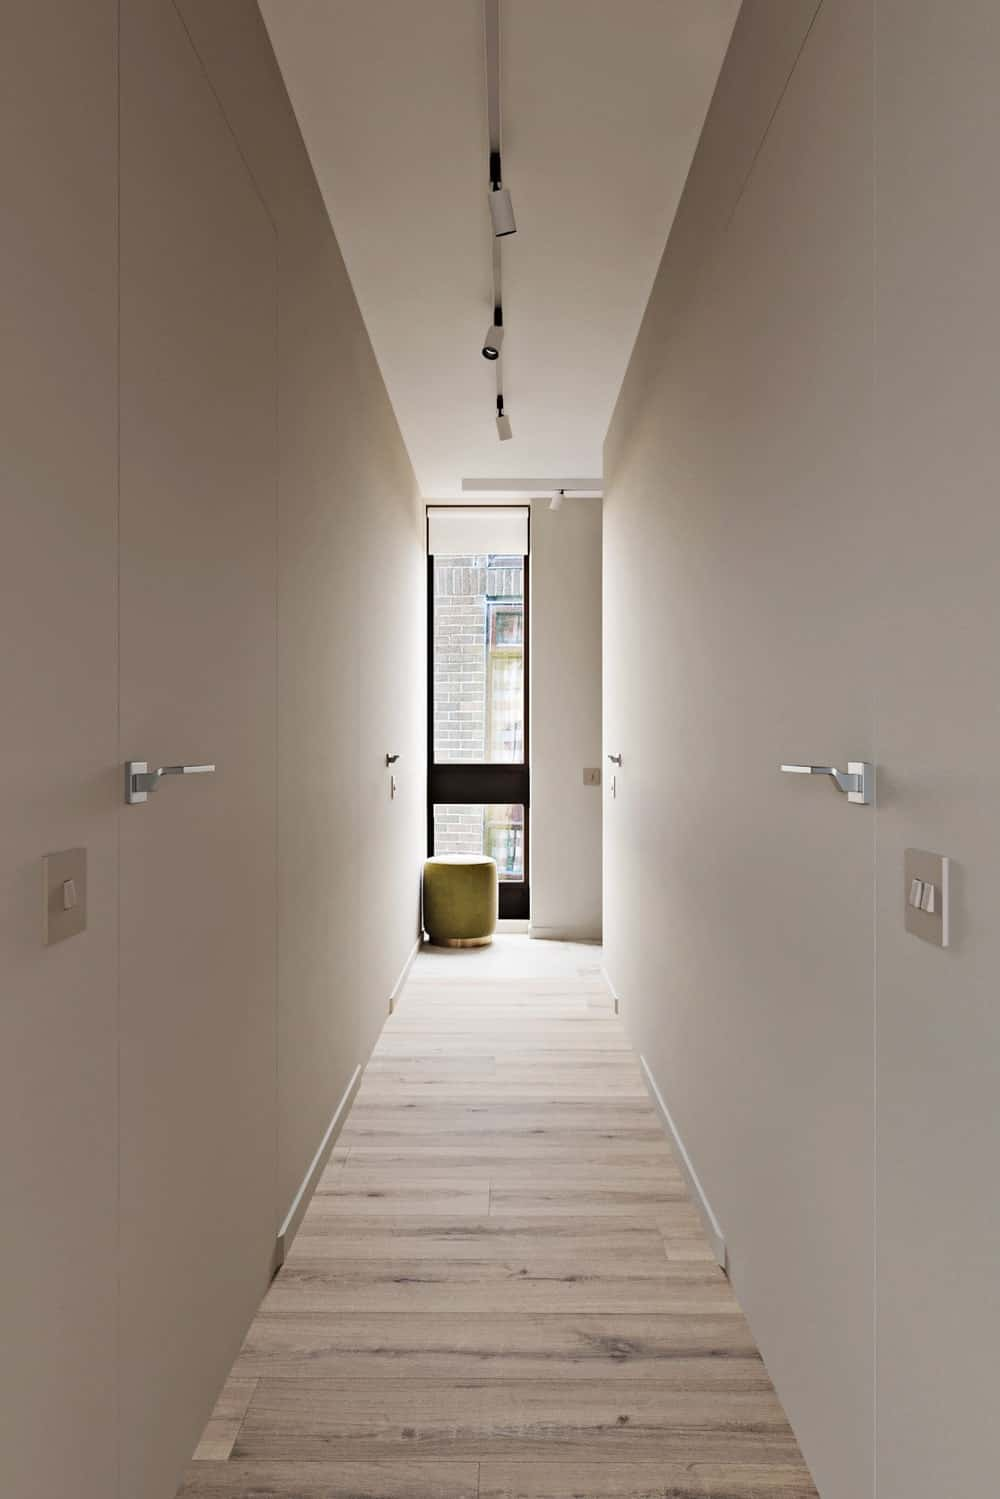 The light beige doors seem to blend well with the surrounding beige walls marked only by their stainless steel knobs.